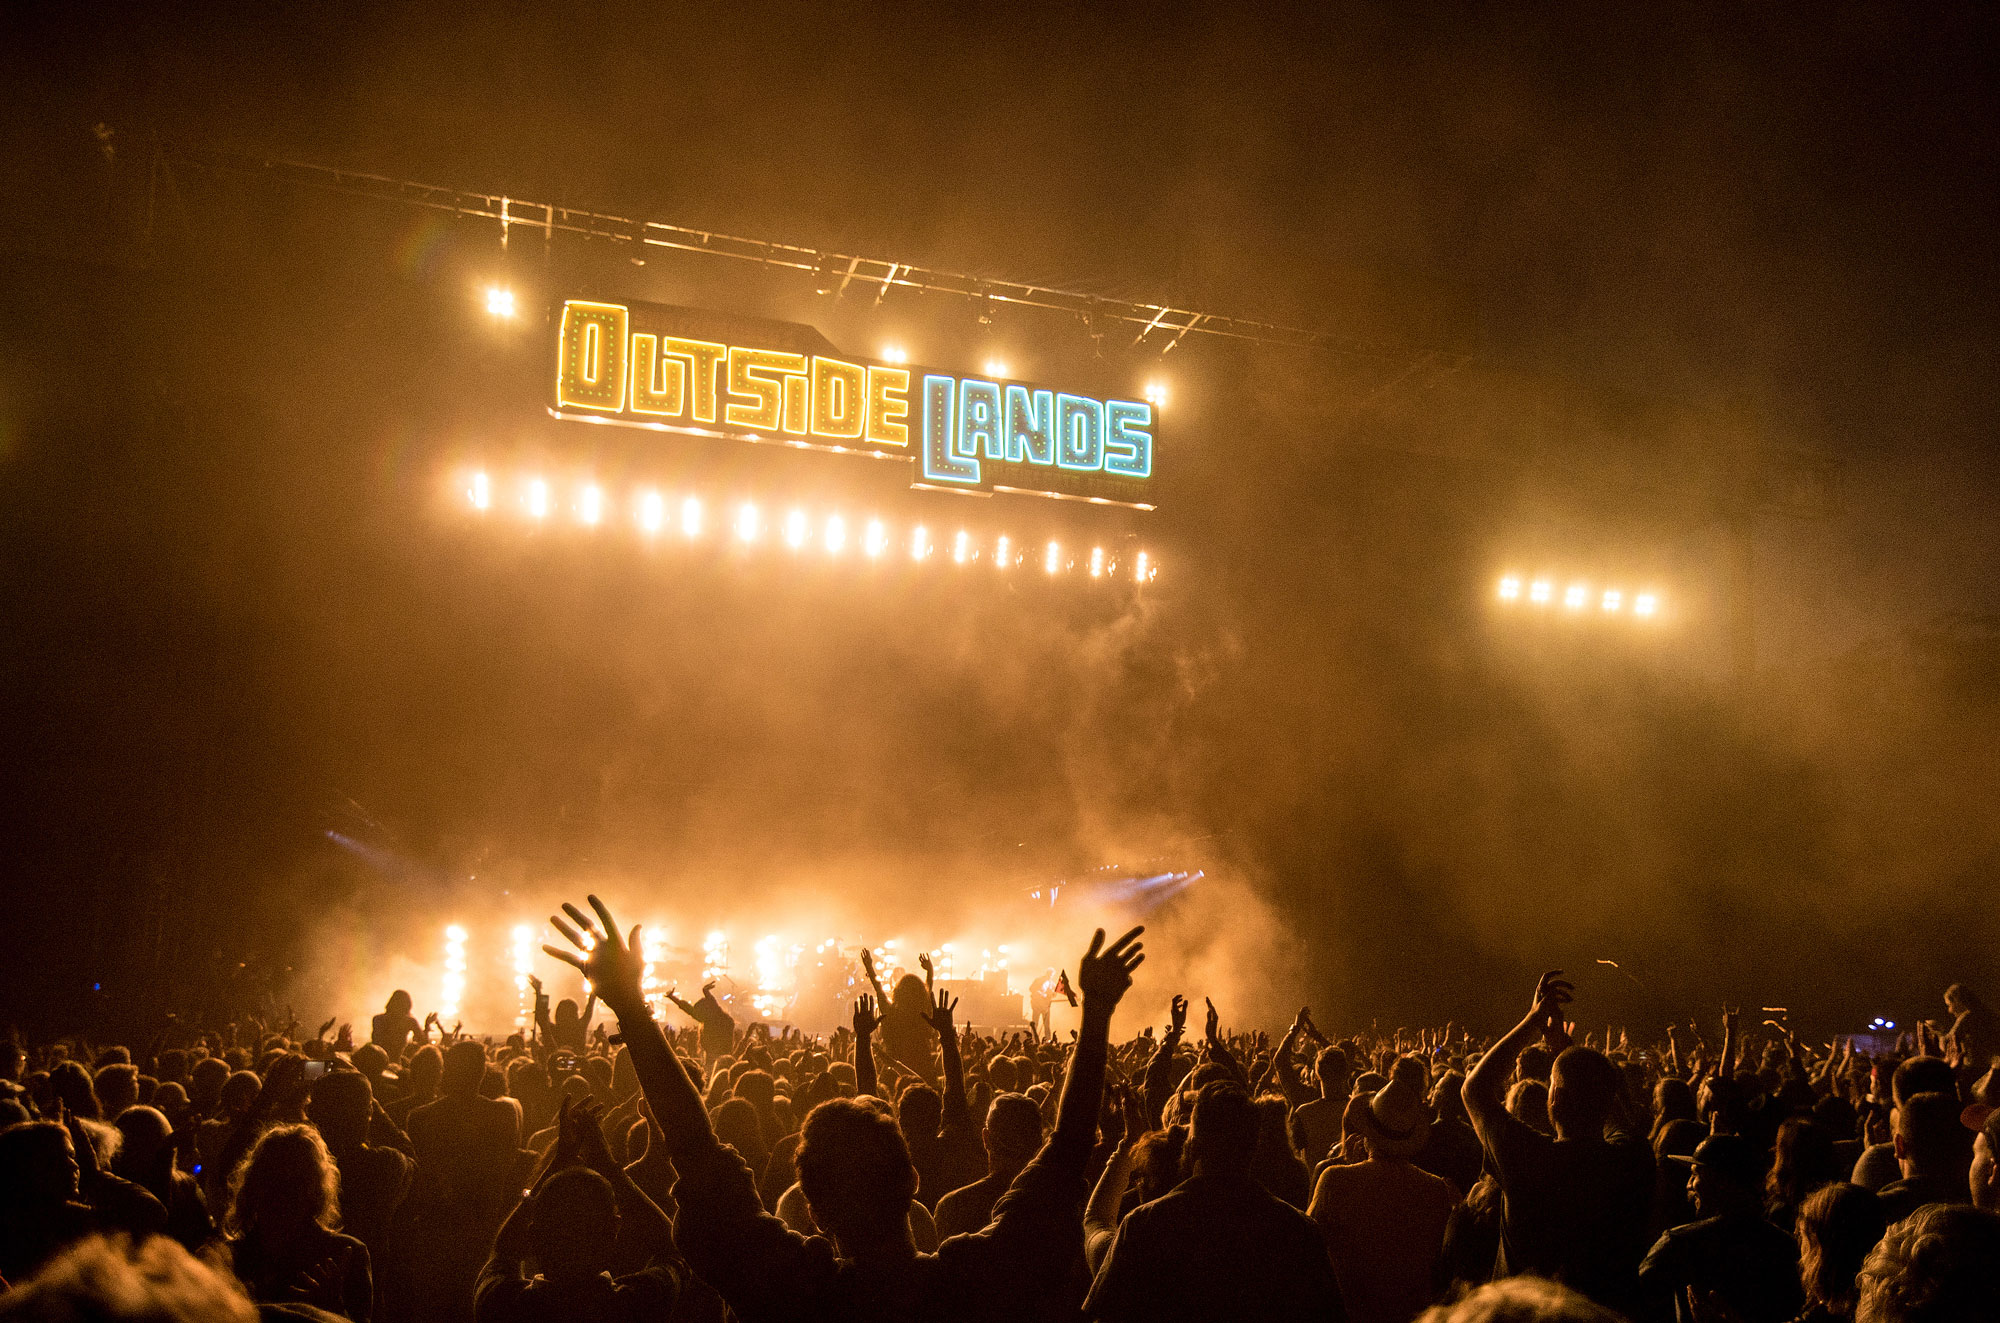 Major California Music Festival Outside Lands Welcomes the Cannabis Industry Cannabis is Legal in Vermont, But Gifting it Isnt